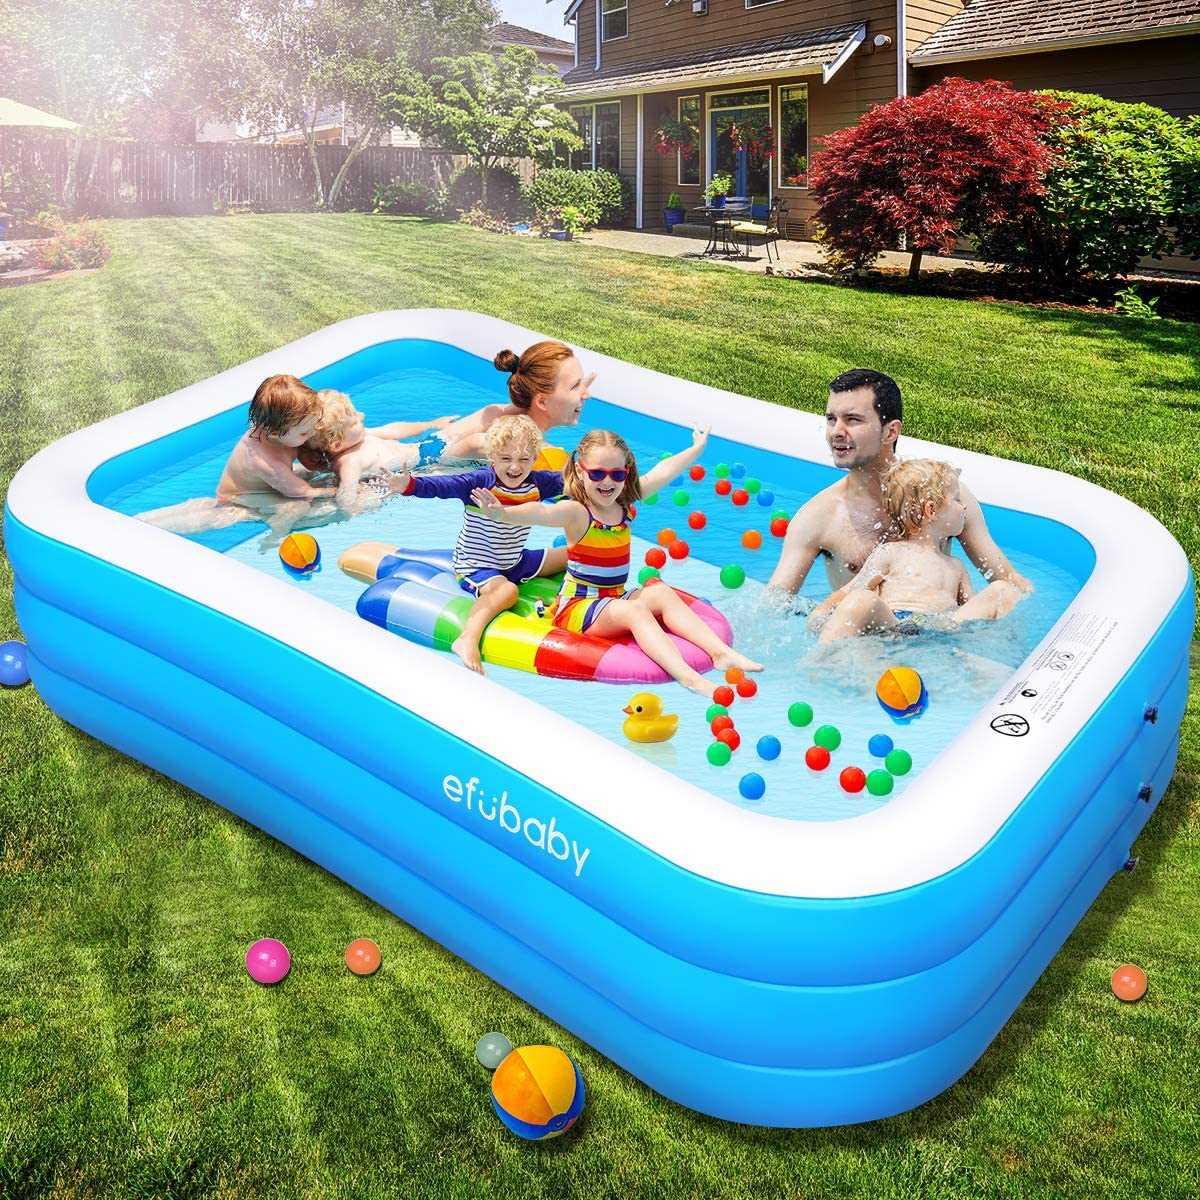 Efubaby Inflatable Pool 120 X 72 X 22 Full Sized Swimming Pools Inflatable Kid Pools Blow Up Pool Toddler Pool Family Pool For Baby Kiddie Adult Ages 3 Outdoor Garden Backyard Ground